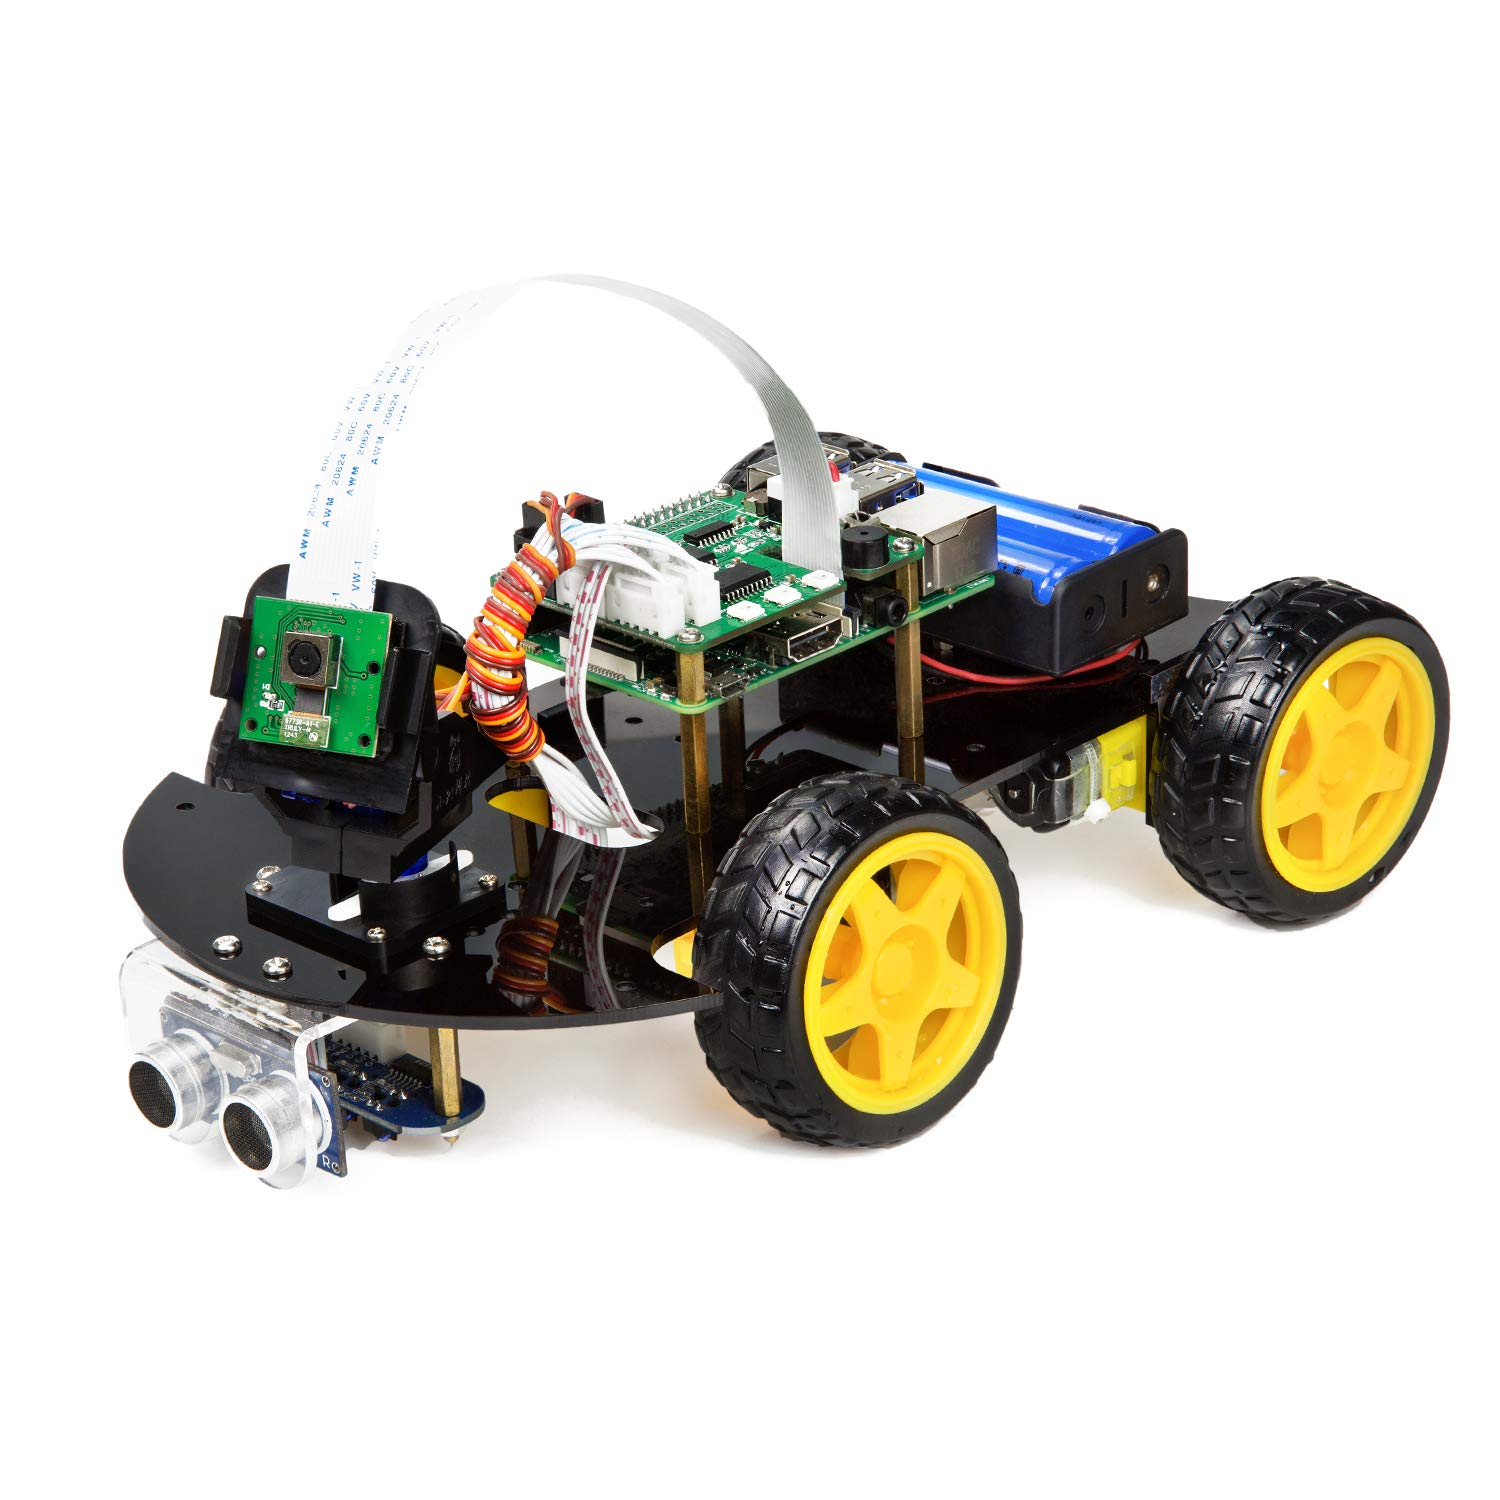 Ultrasonic Sensor and App Control Obstacle Avoidance with Camera Module Line Tracking UCTRONICS Robot Car Kit for Raspberry Pi Real Time Image and Video Line Follower